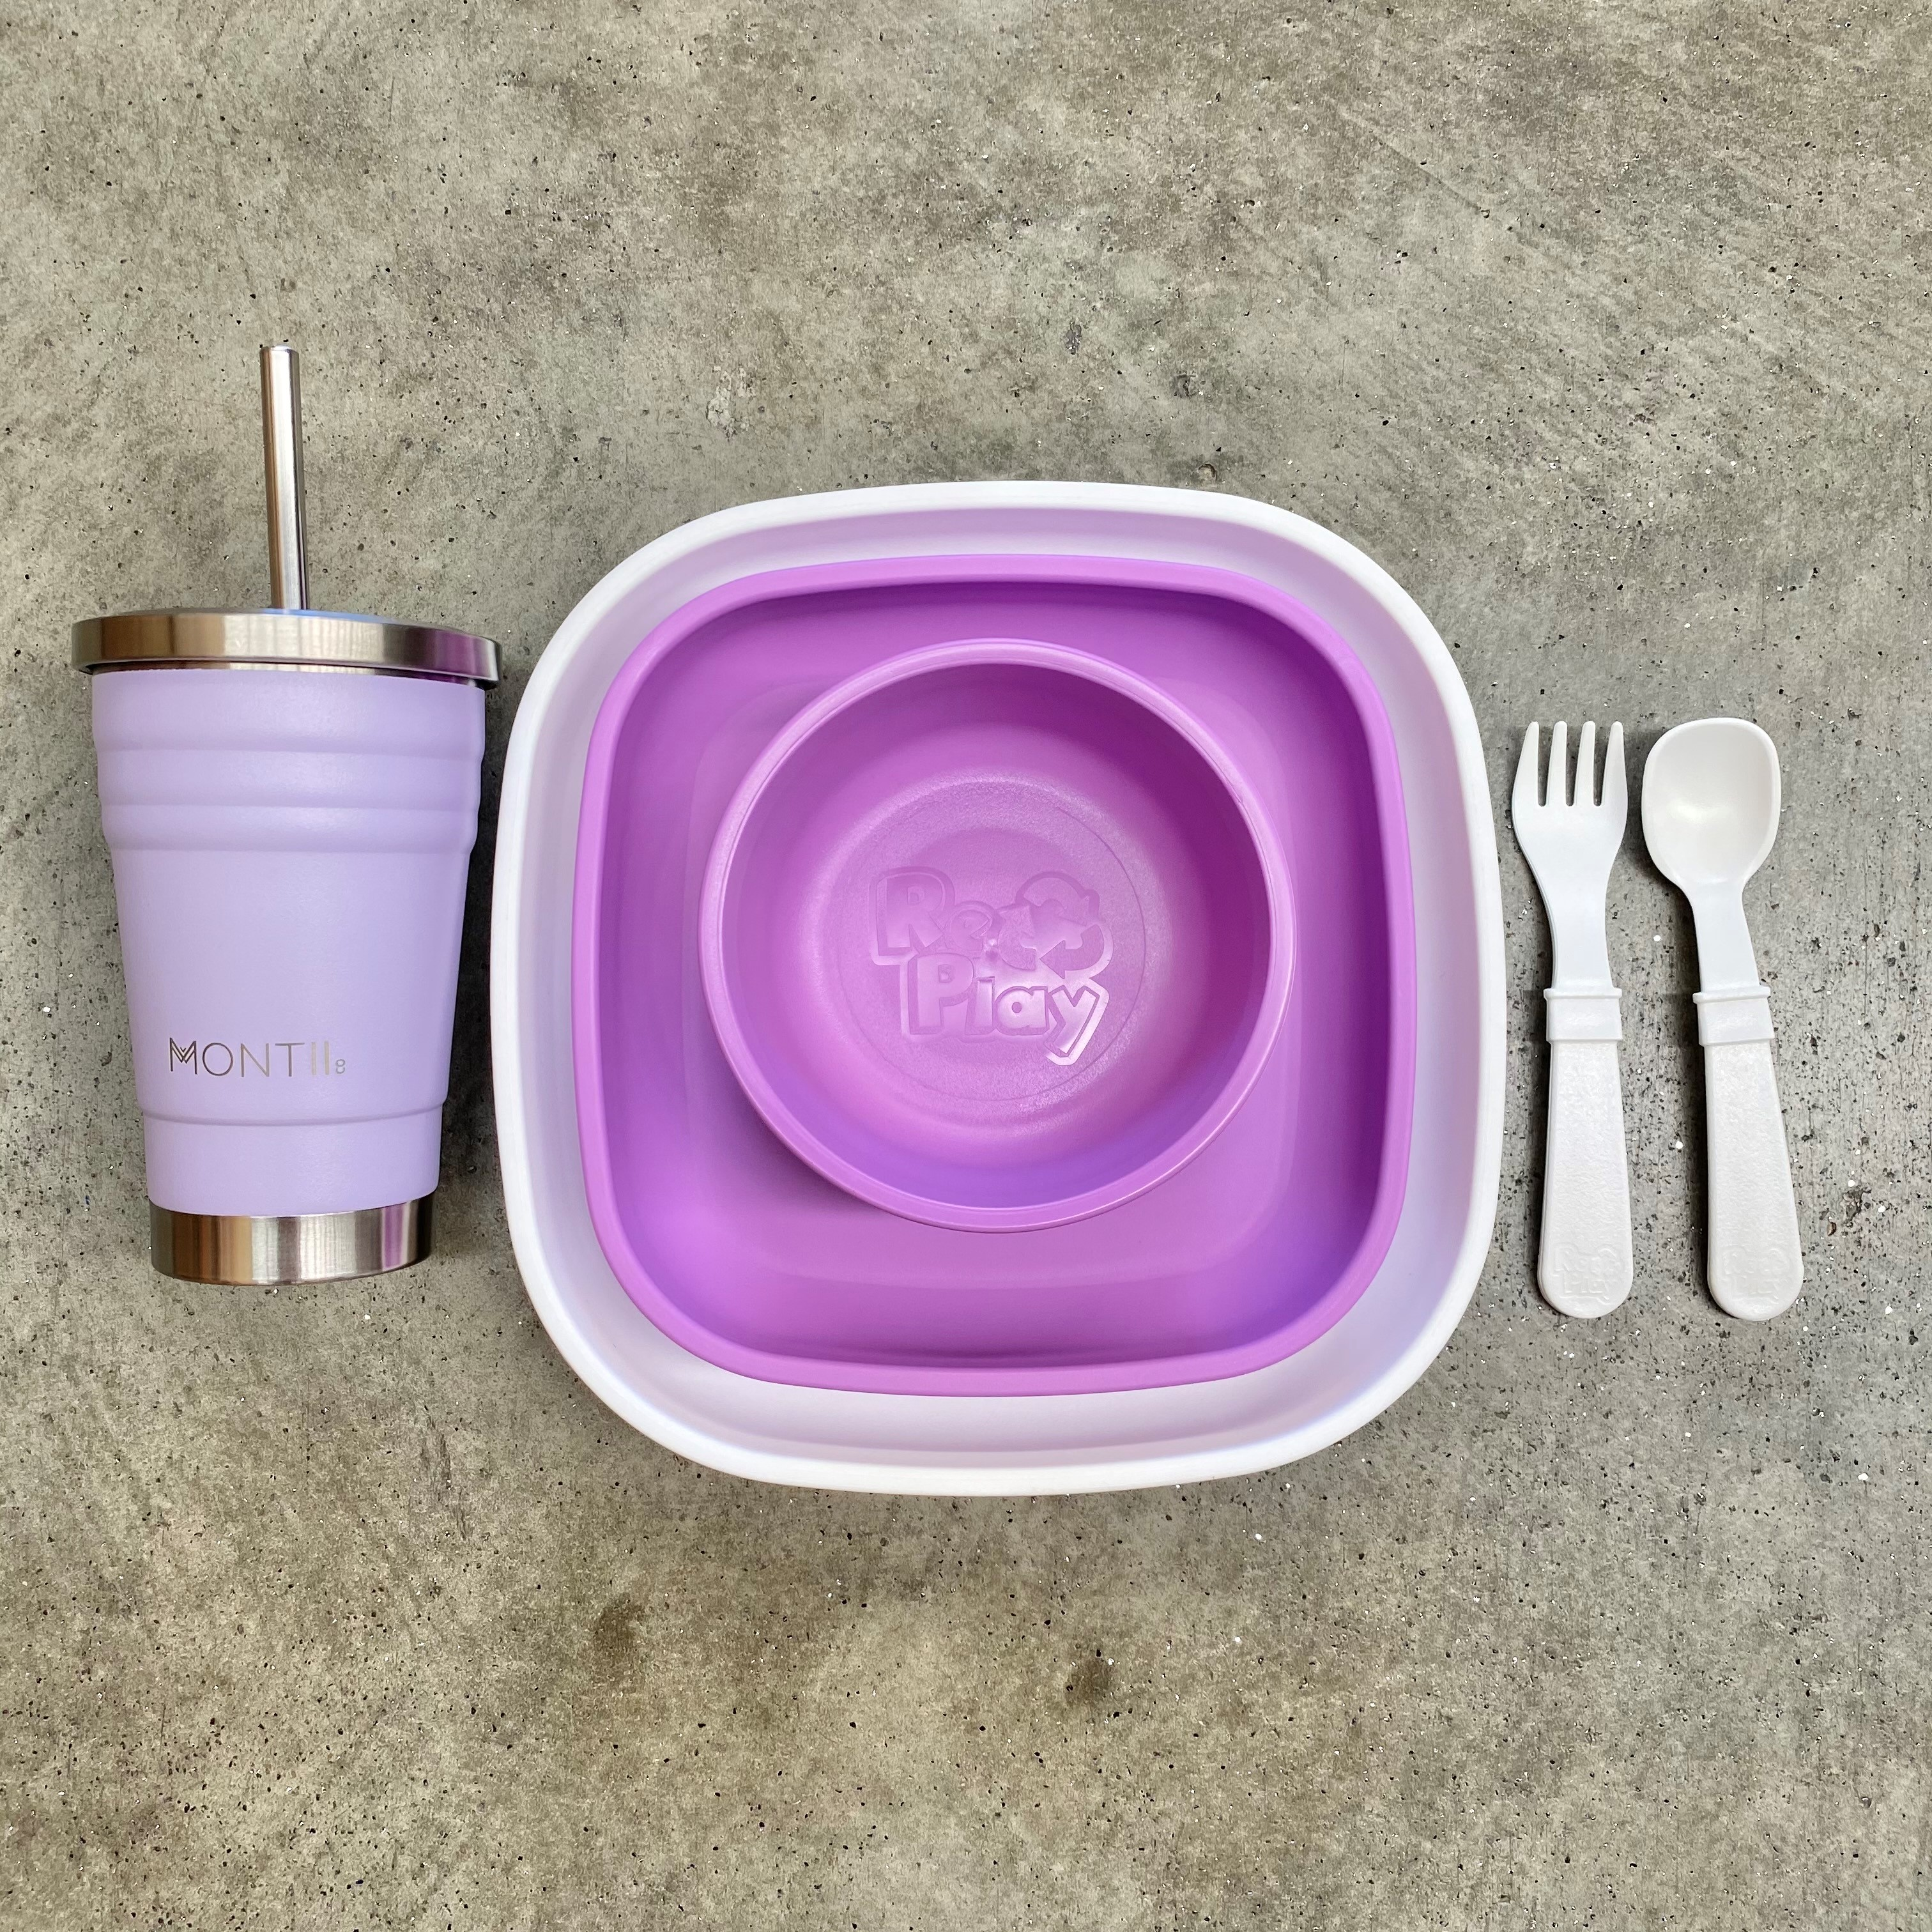 Replay Meal Time Set with MontiiCo Mini Smoothie Cup!